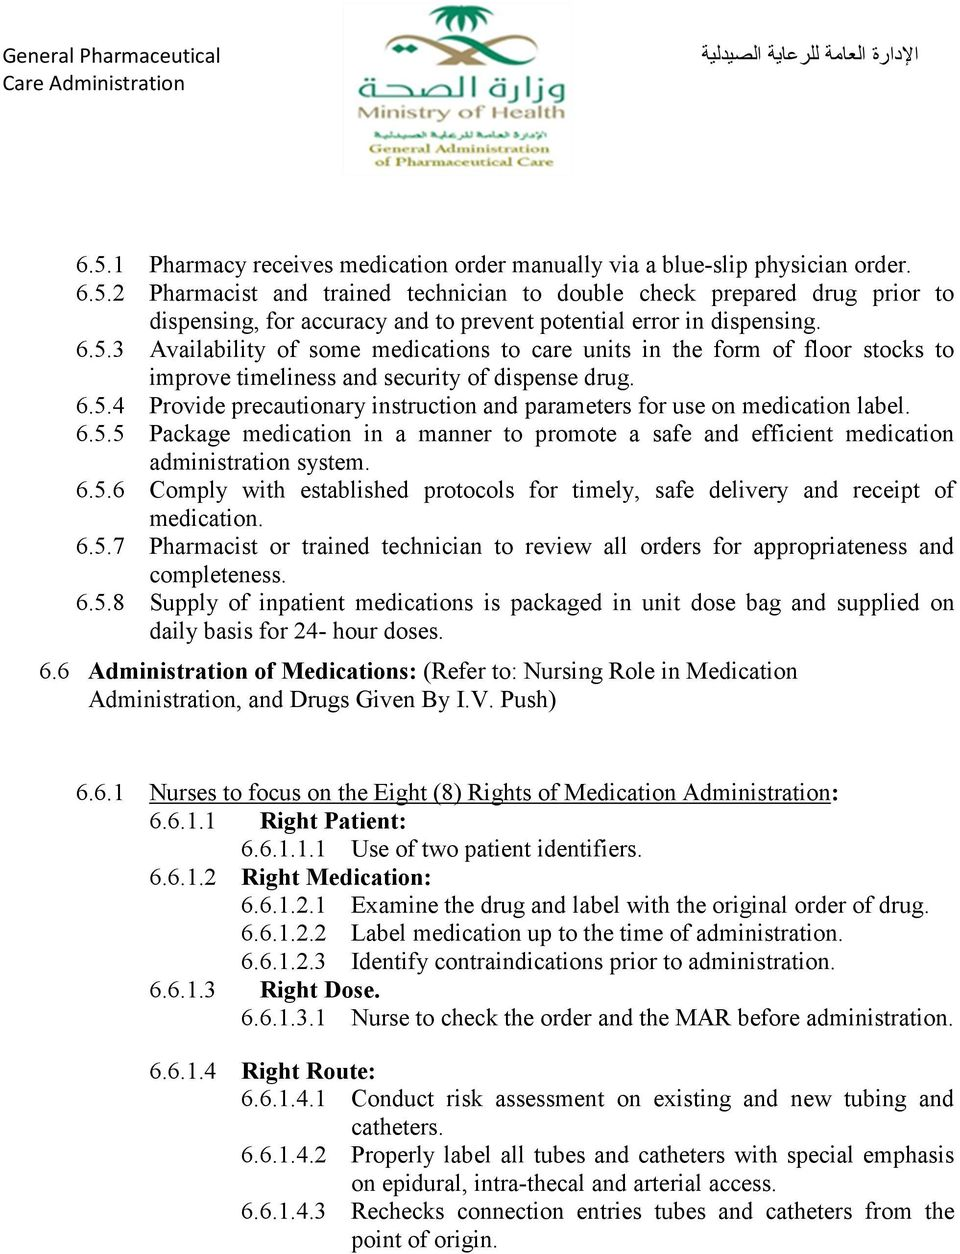 6.5.5 Package medication in a manner to promote a safe and efficient medication administration system. 6.5.6 Comply with established protocols for timely, safe delivery and receipt of medication. 6.5.7 Pharmacist or trained technician to review all orders for appropriateness and completeness.